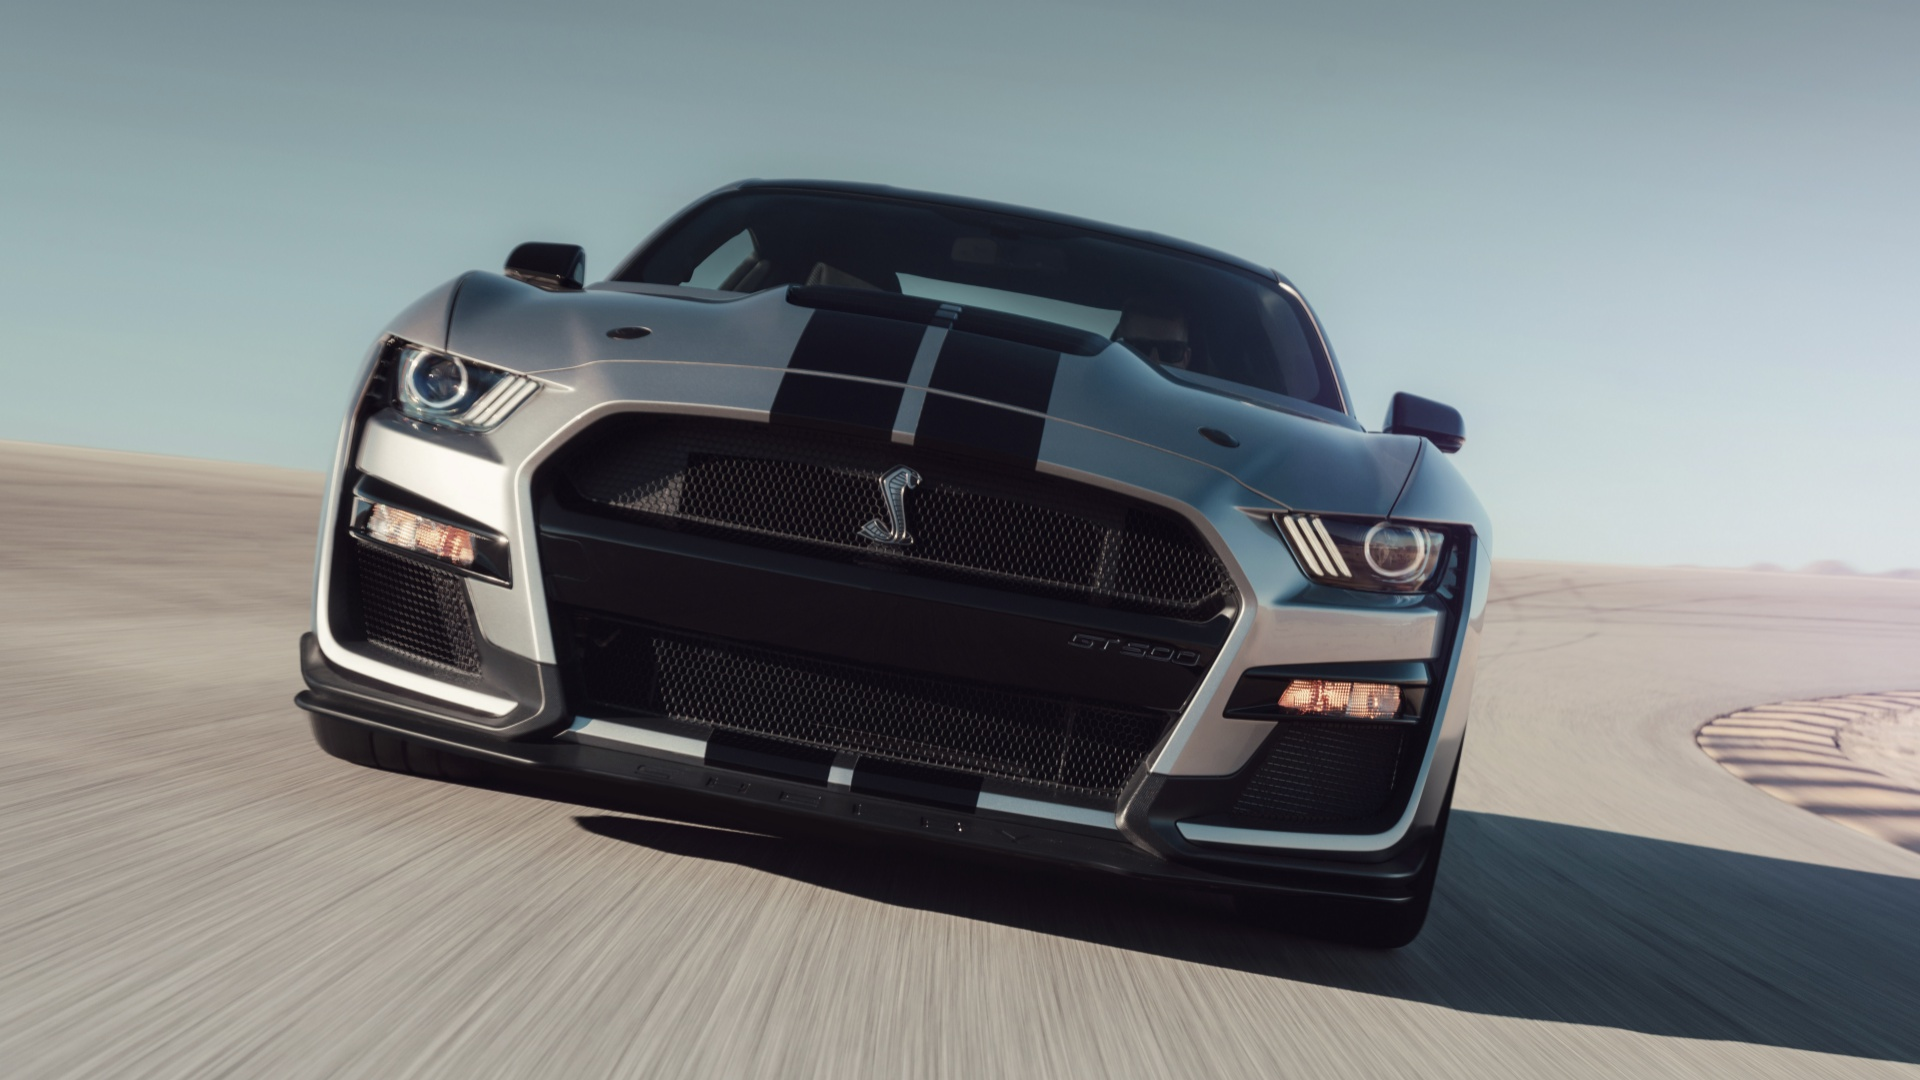 The 2020 shelby gt500 fords most powerful street legal car to date